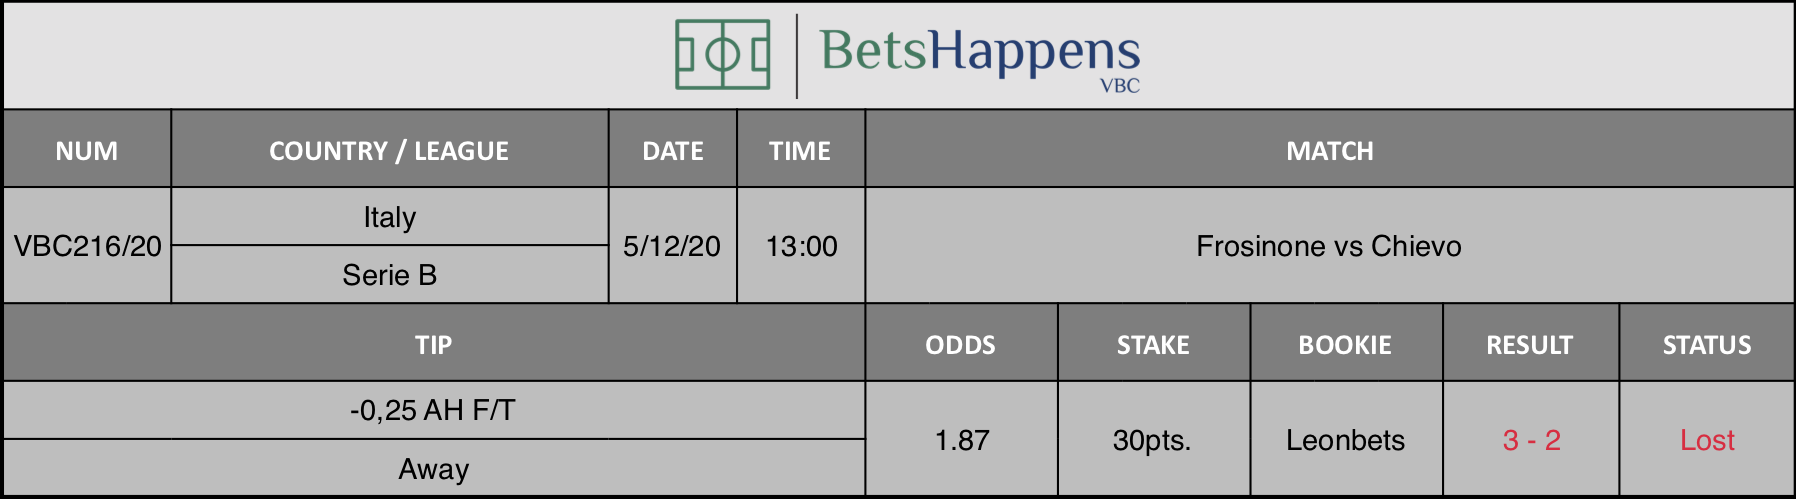 Results of our tip for the Frosinone vs Chievo match where +0,25 AH F/T Away is recommended.